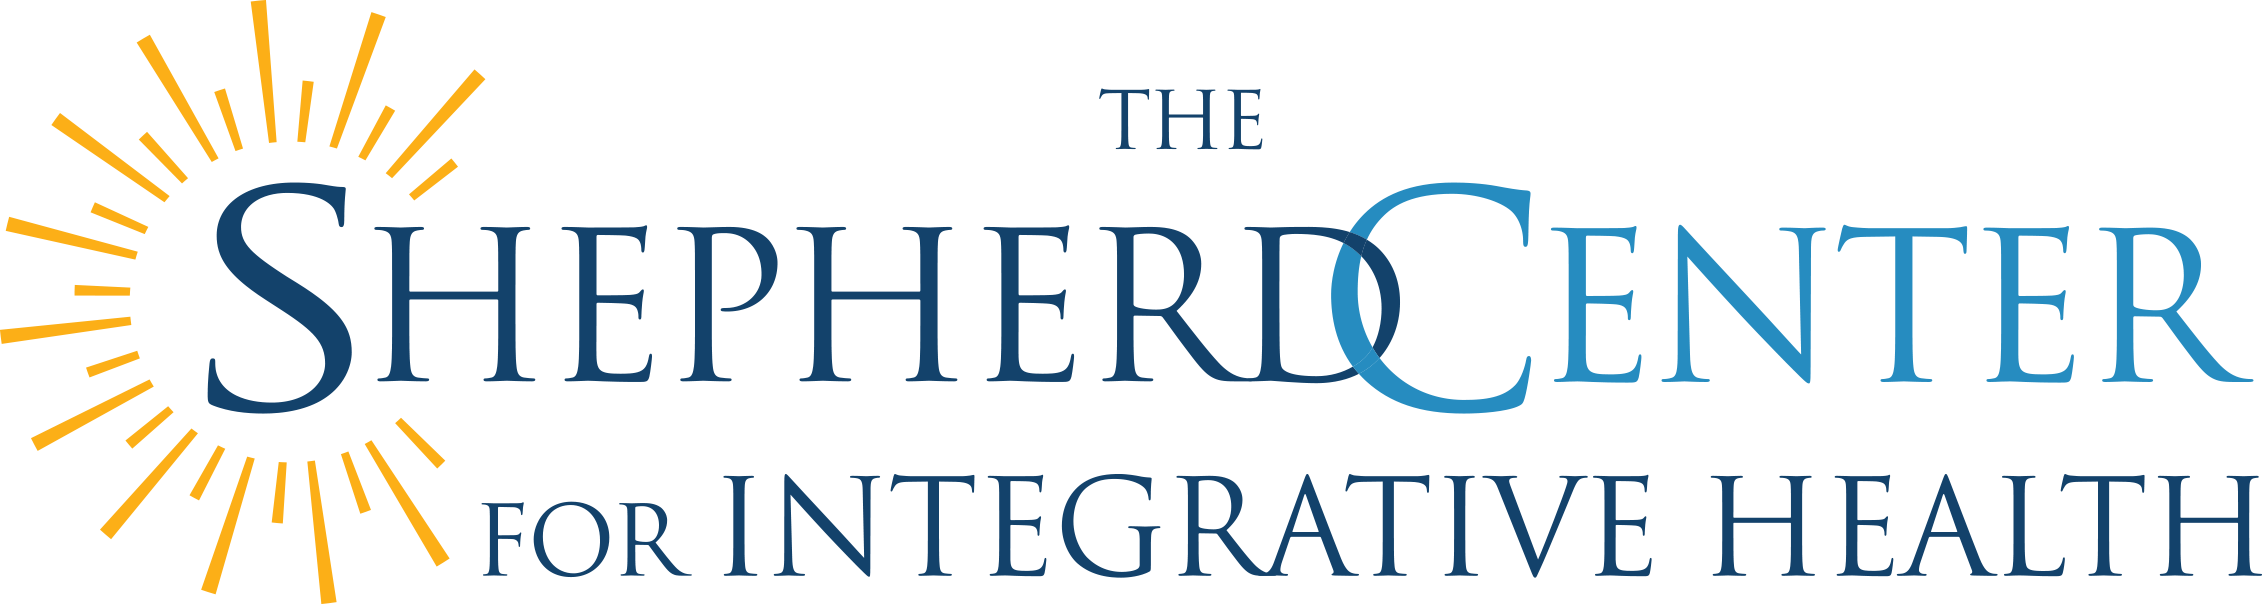 The Shepherd Center for Integrative Health | Cleveland, Ohio